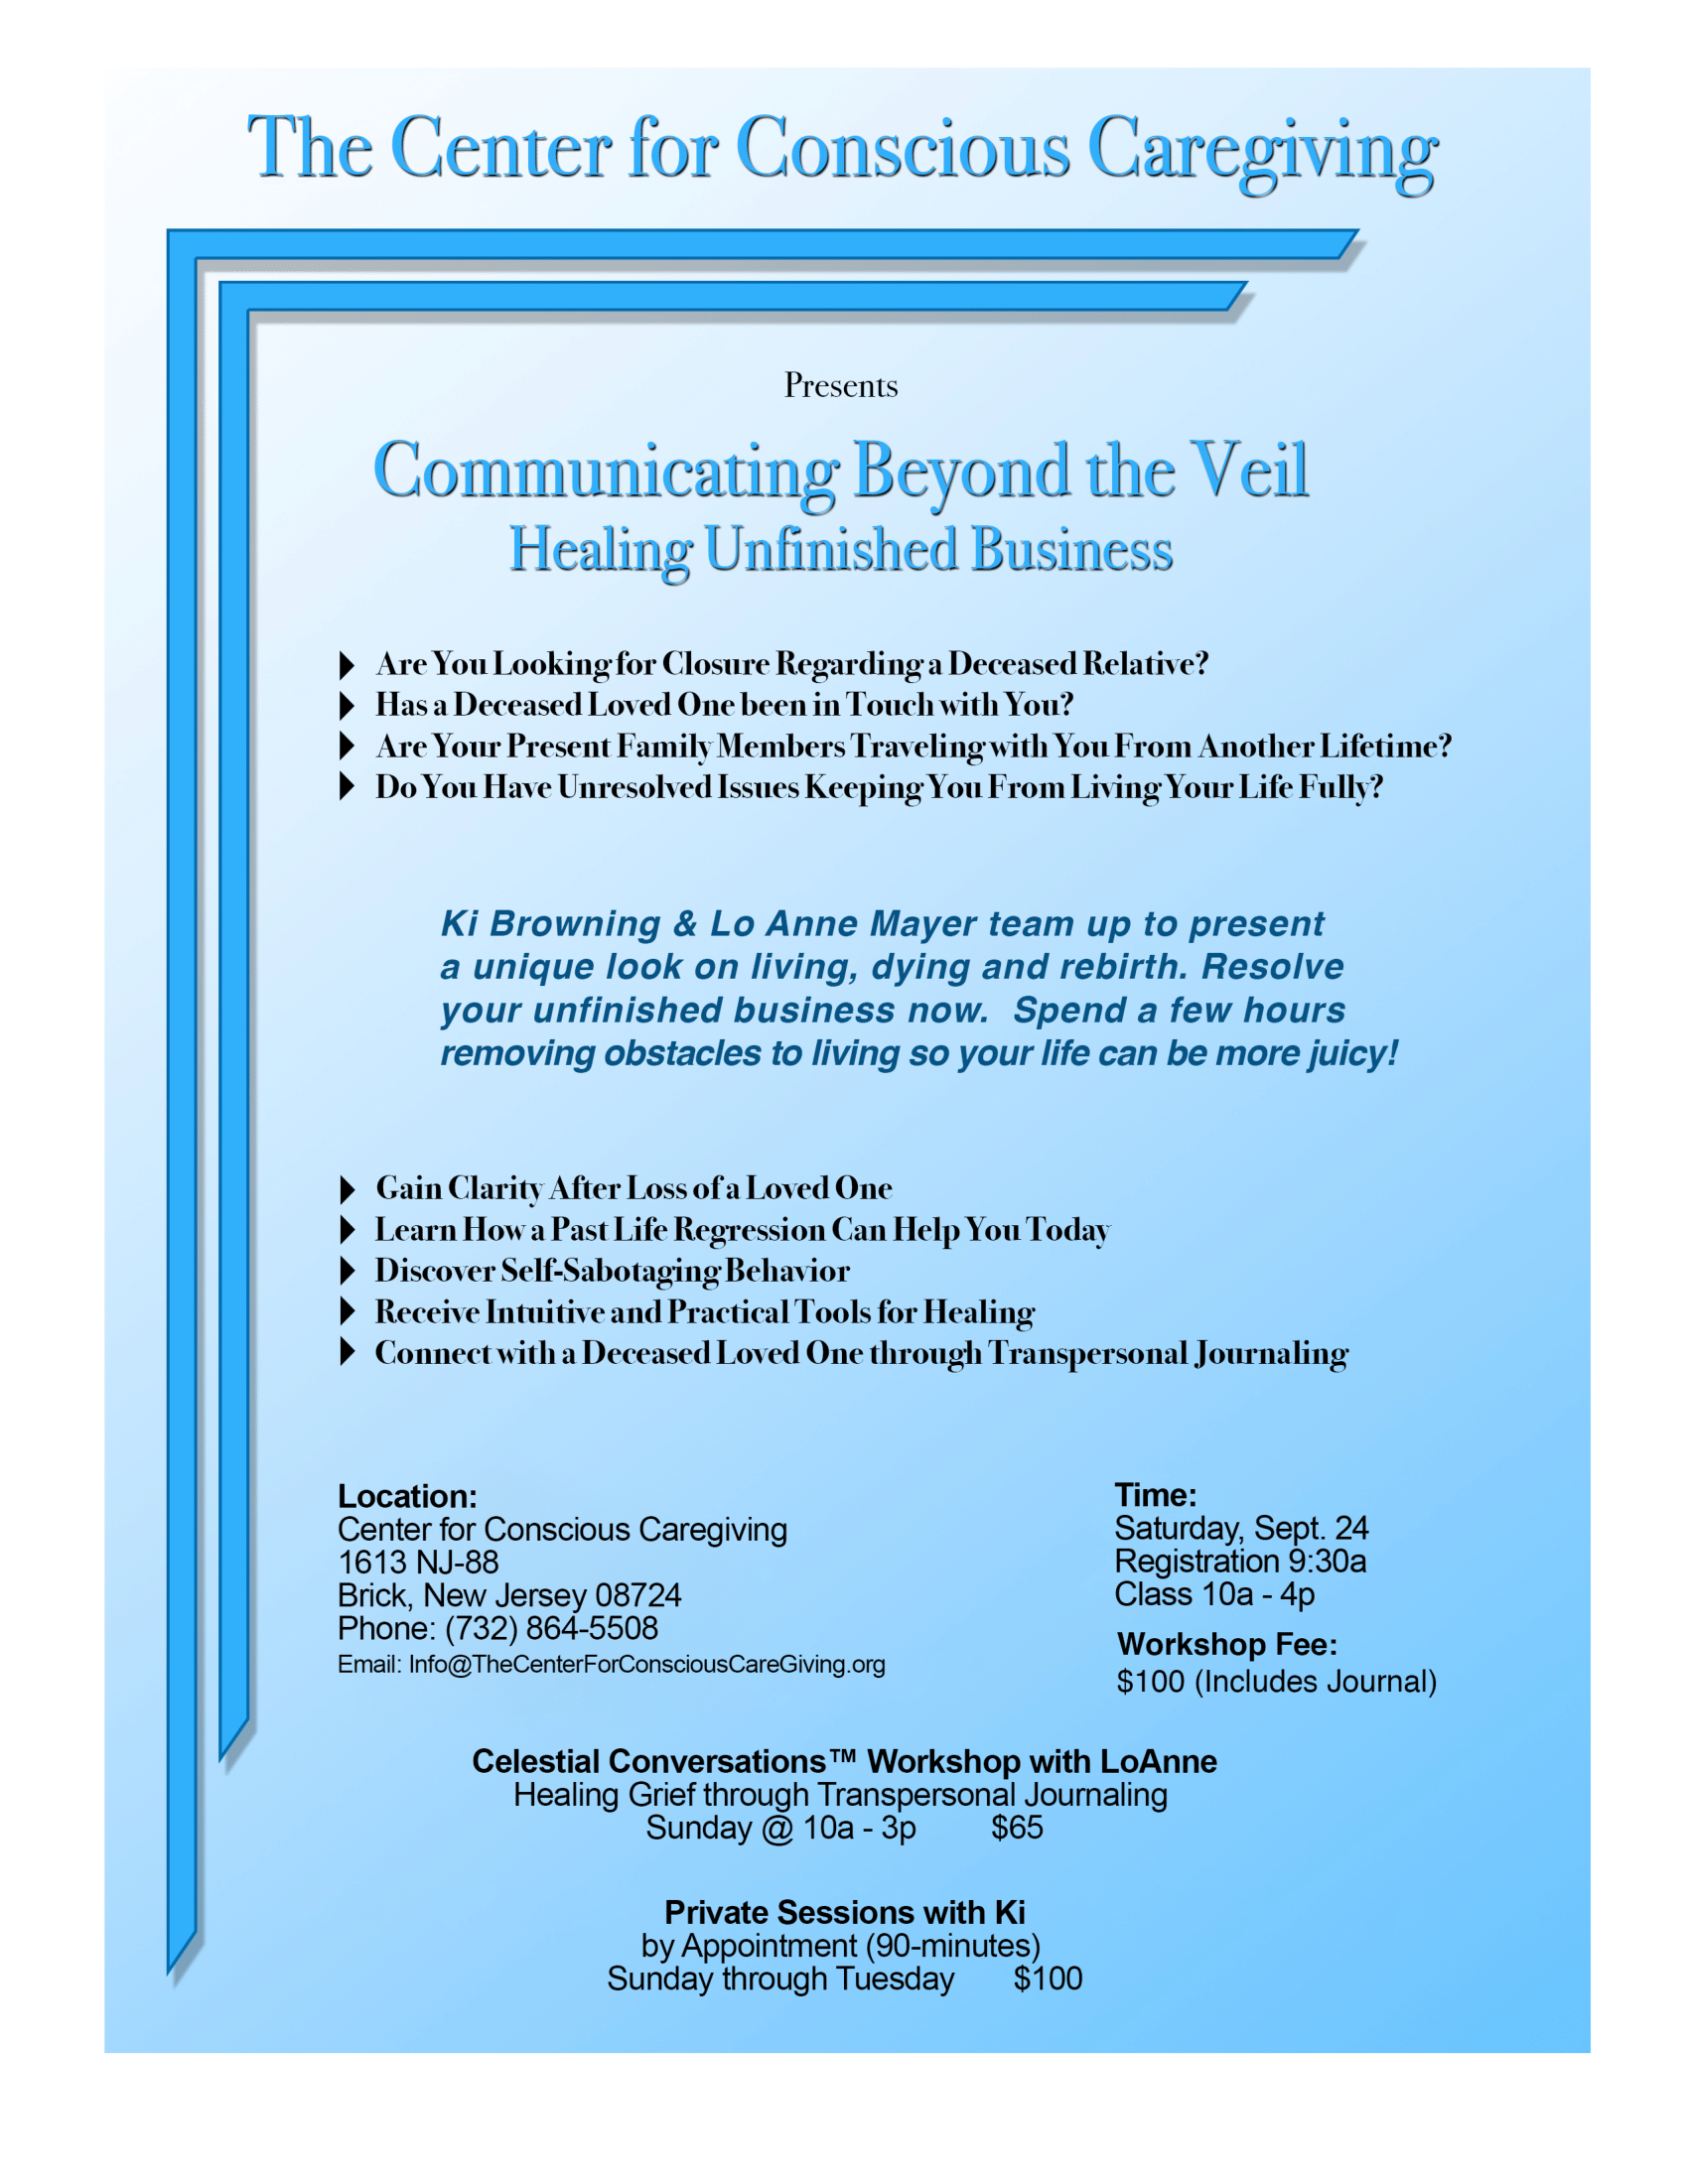 Flyer for Class - Communicating Beyond the Veil, Healing Unfinished Business - 24 Sep 2016